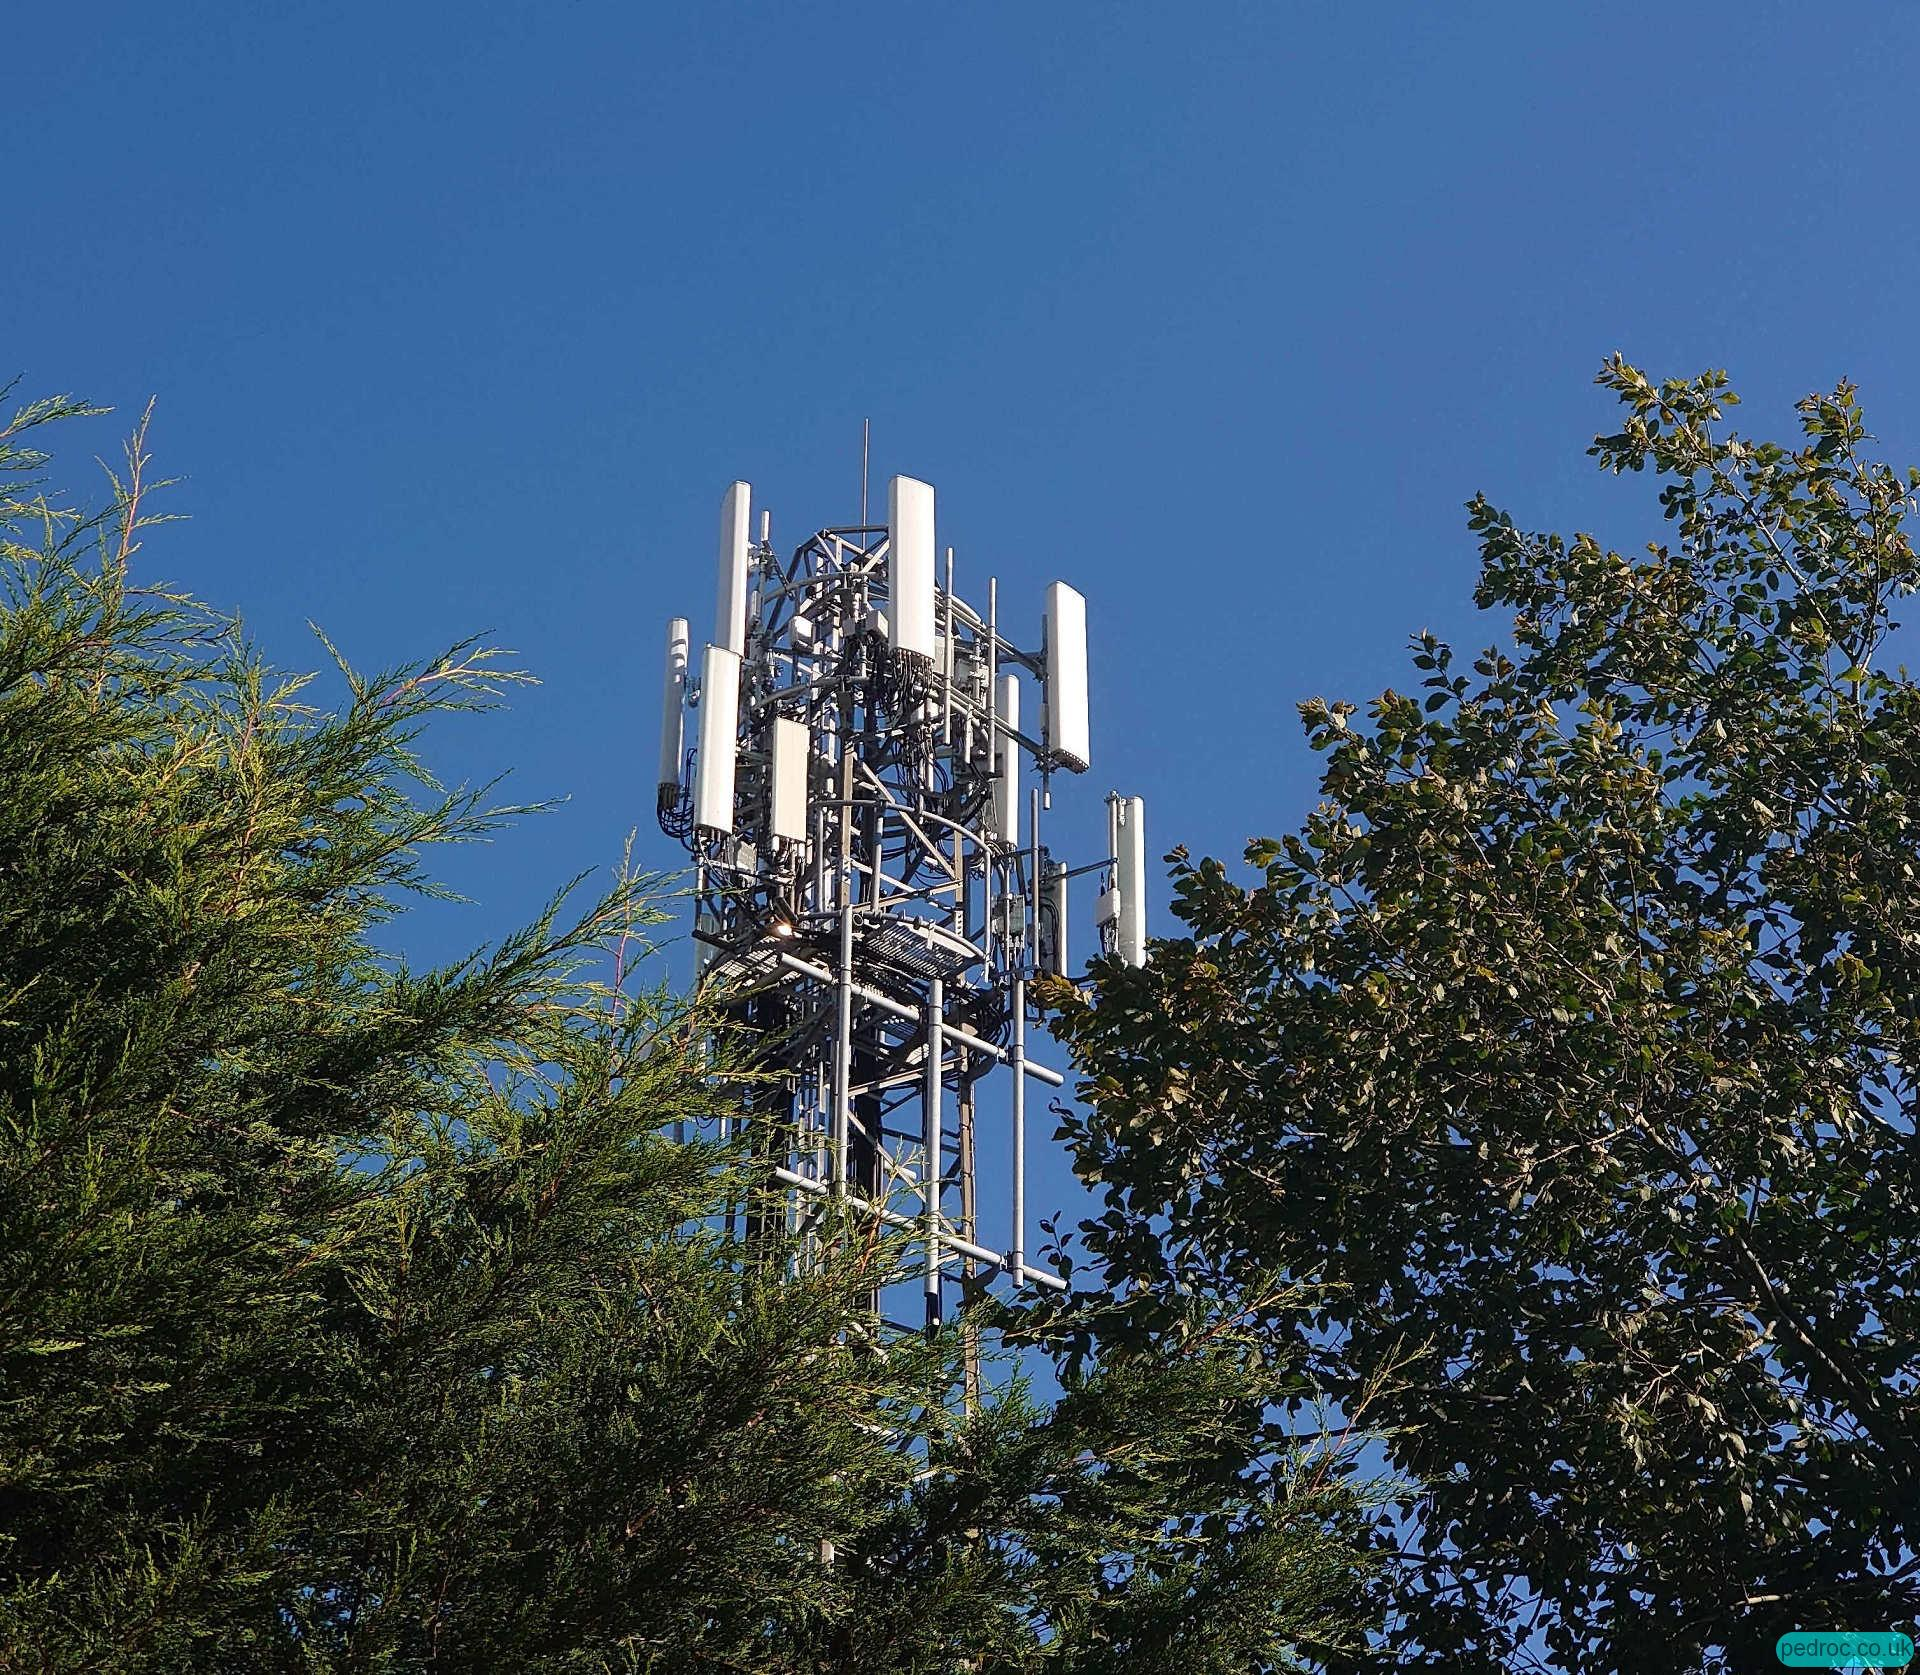 Three UK Chariot project Huawei mast rebuild with 4T4R across all the 4G bands.